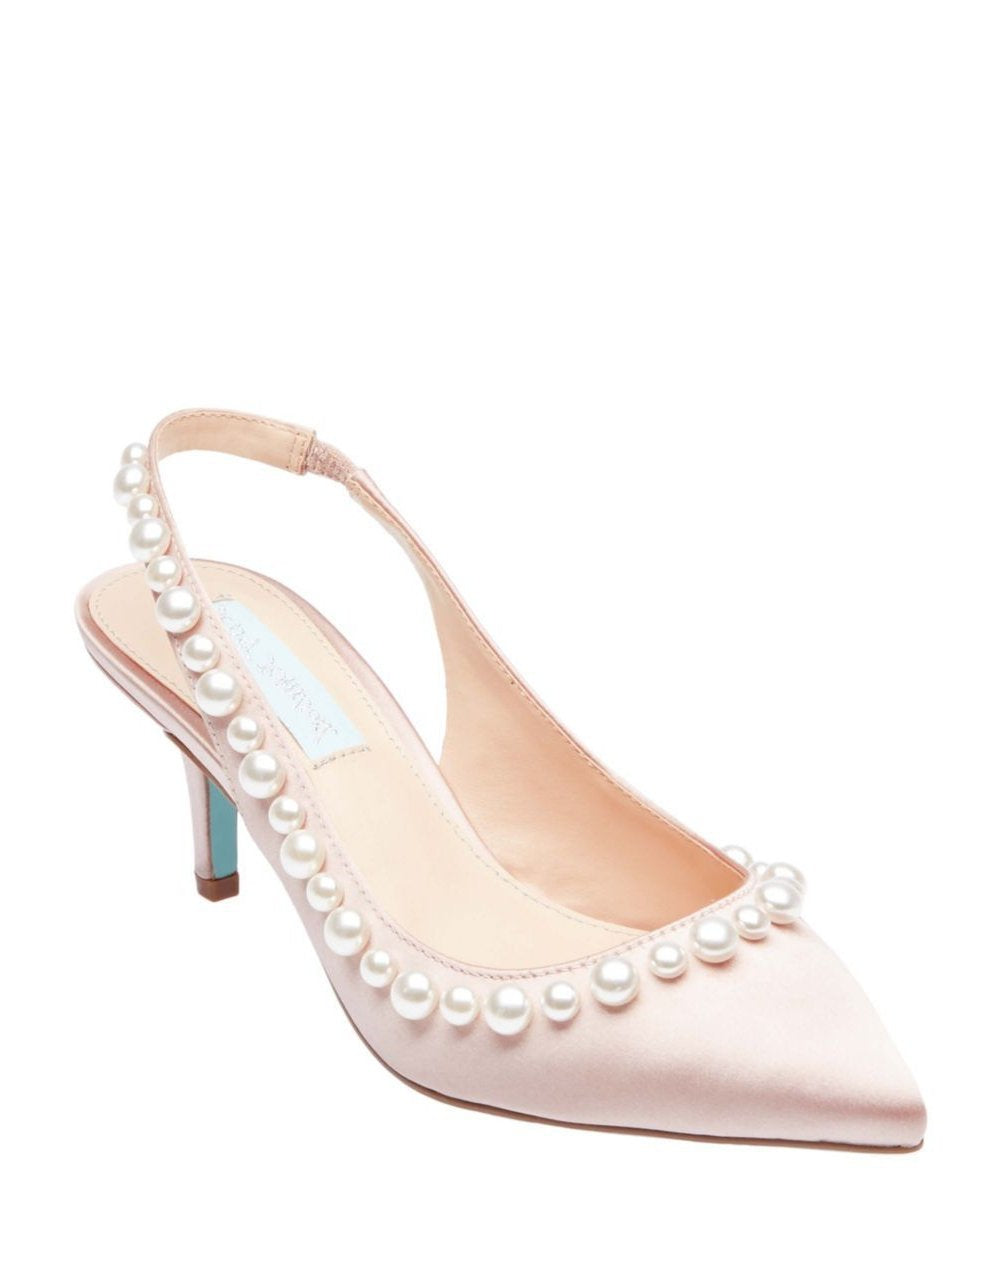 SB-ISA NUDE SATIN - SHOES - Betsey Johnson